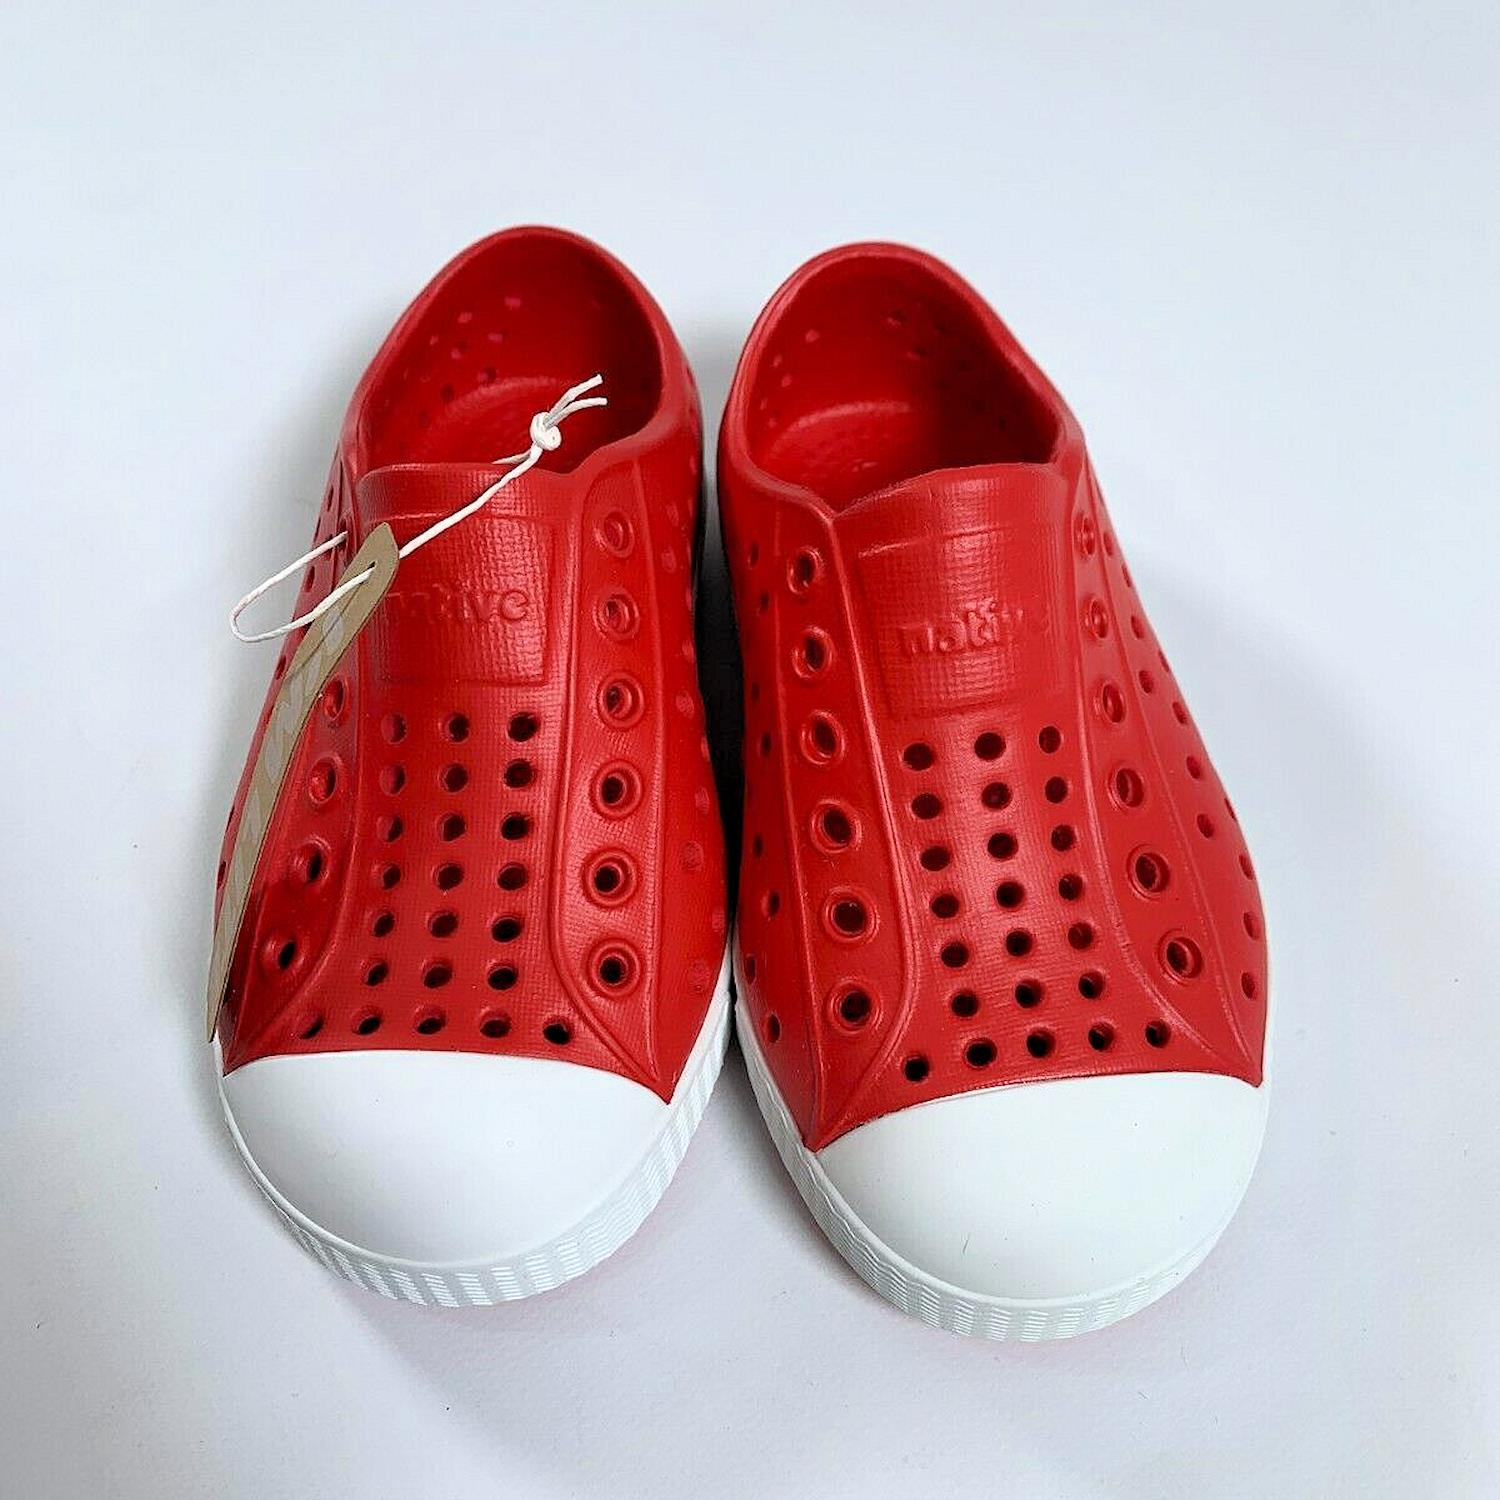 Native Shoes Jefferson Mischievous Genius Torch Red//Shell White Child